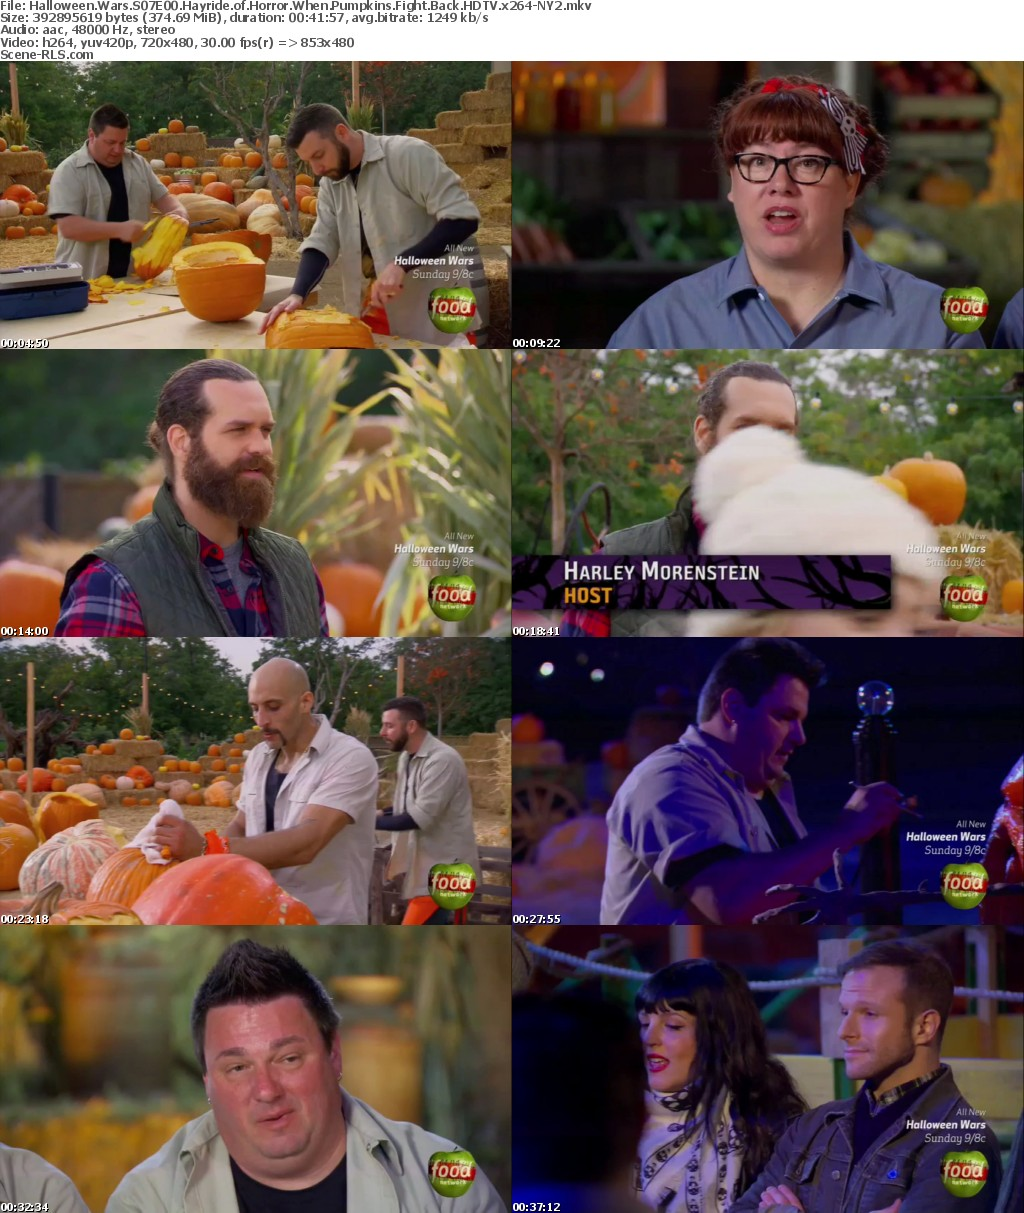 Halloween Wars S07E00 Hayride of Horror When Pumpkins Fight Back ...